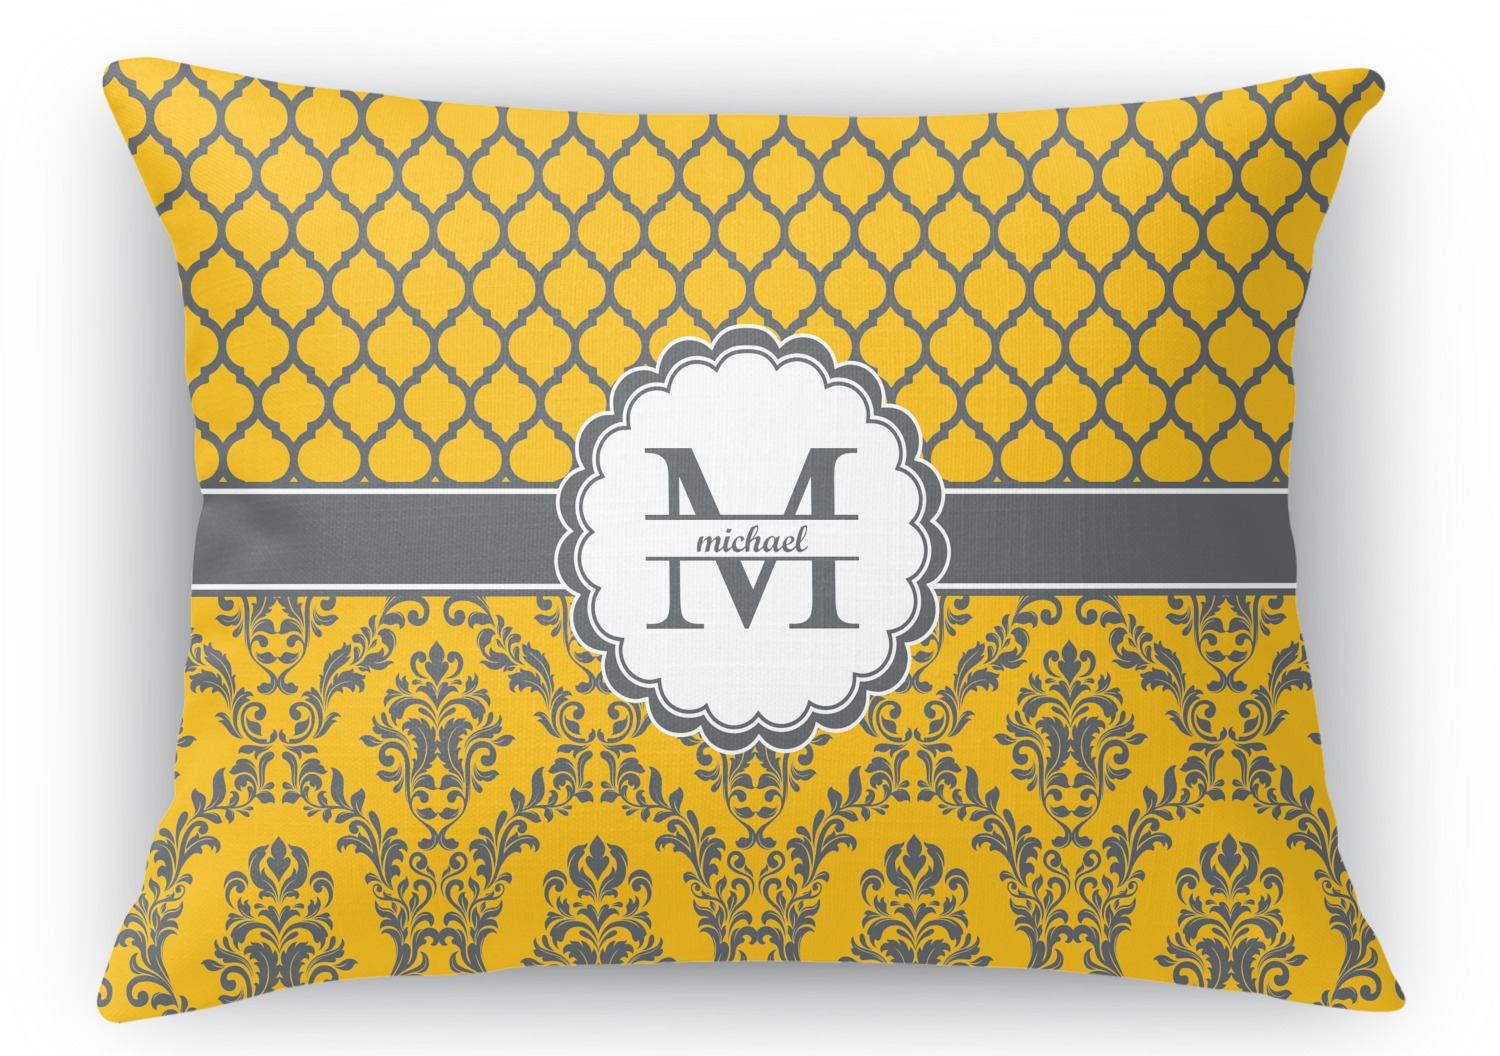 Rectangular Throw Pillow Dimensions : Damask & Moroccan Rectangular Throw Pillow - 18